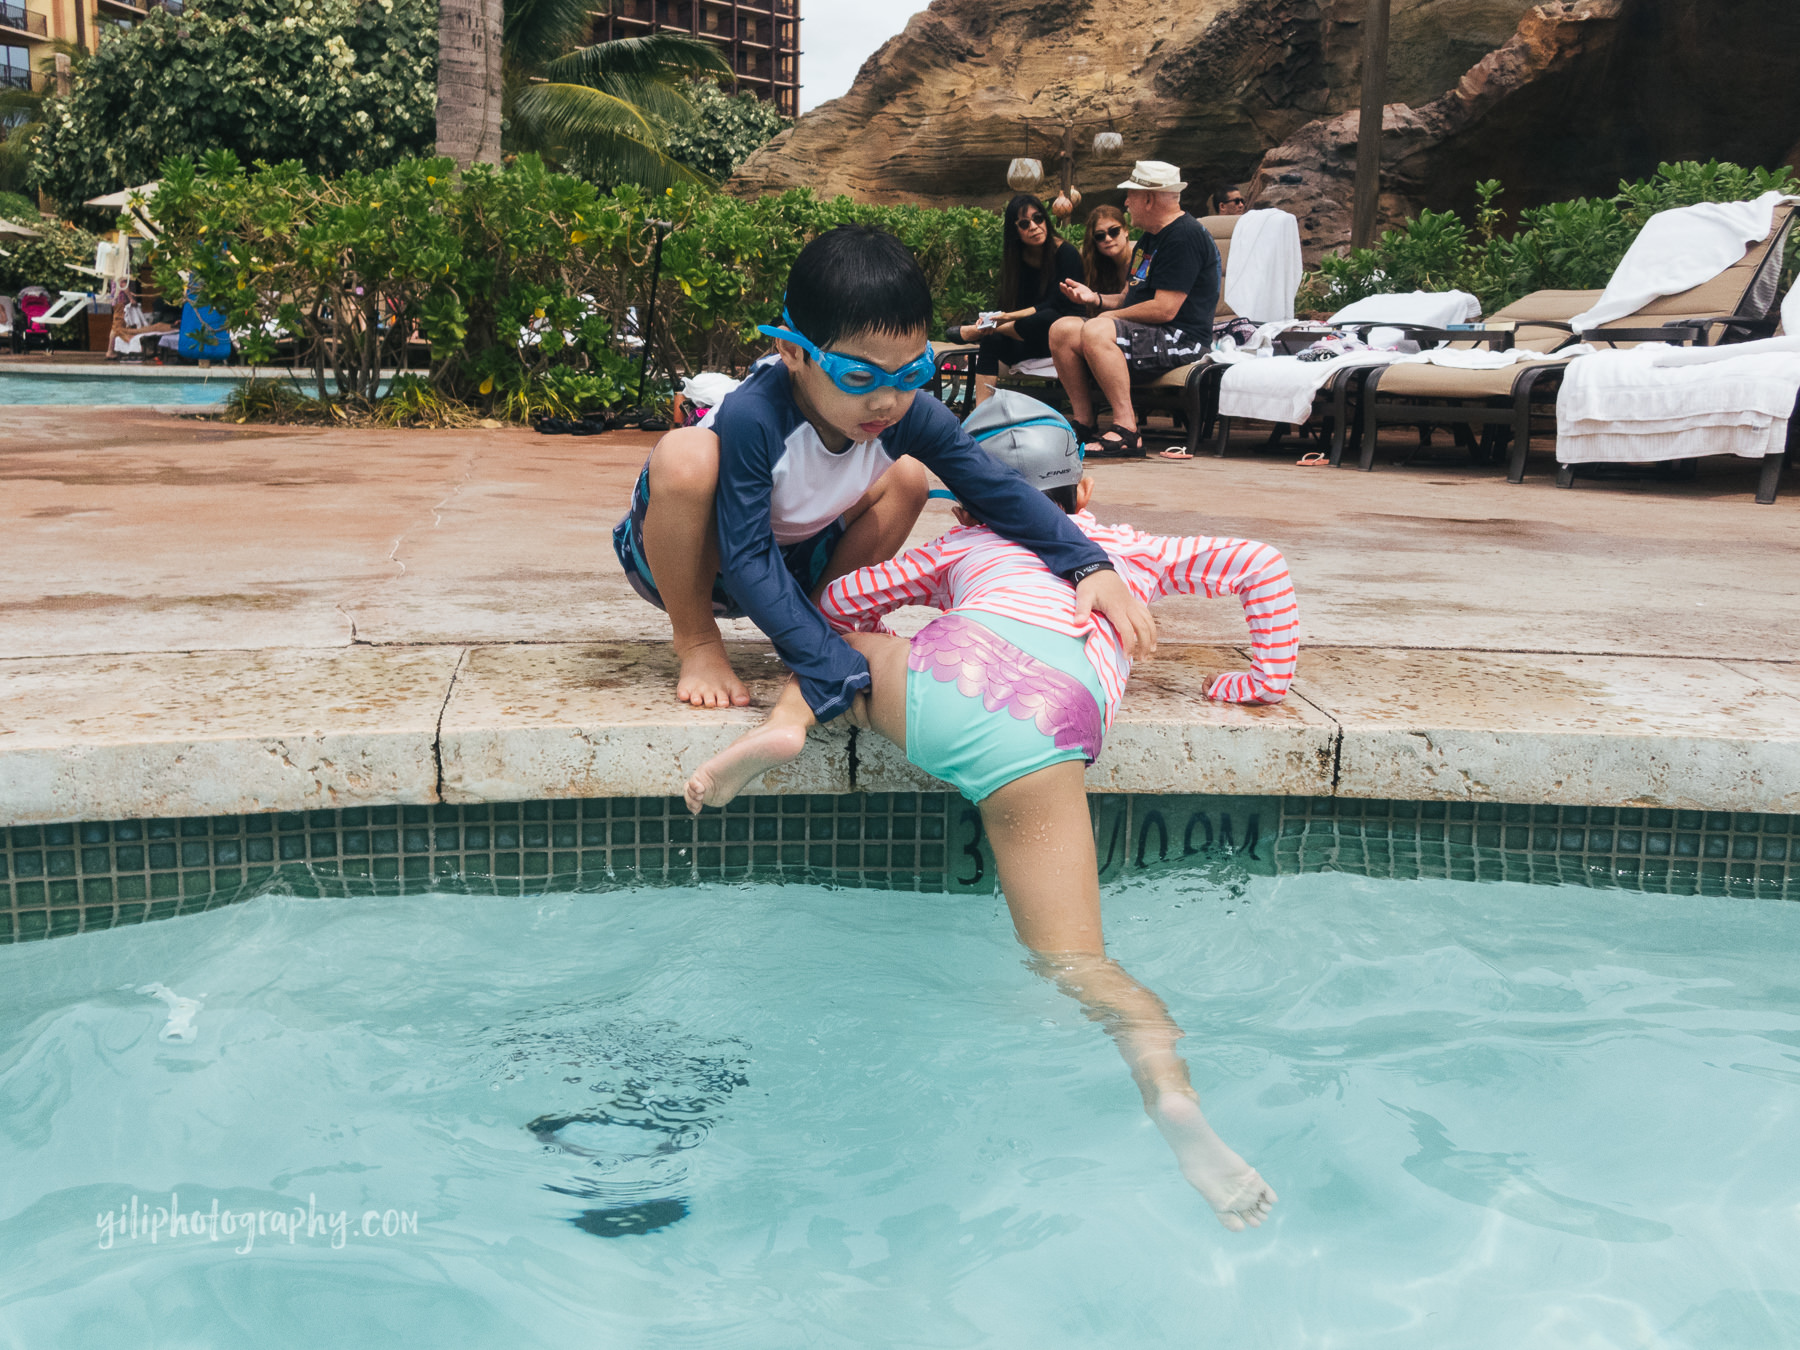 twin brother pulling sister out of pool